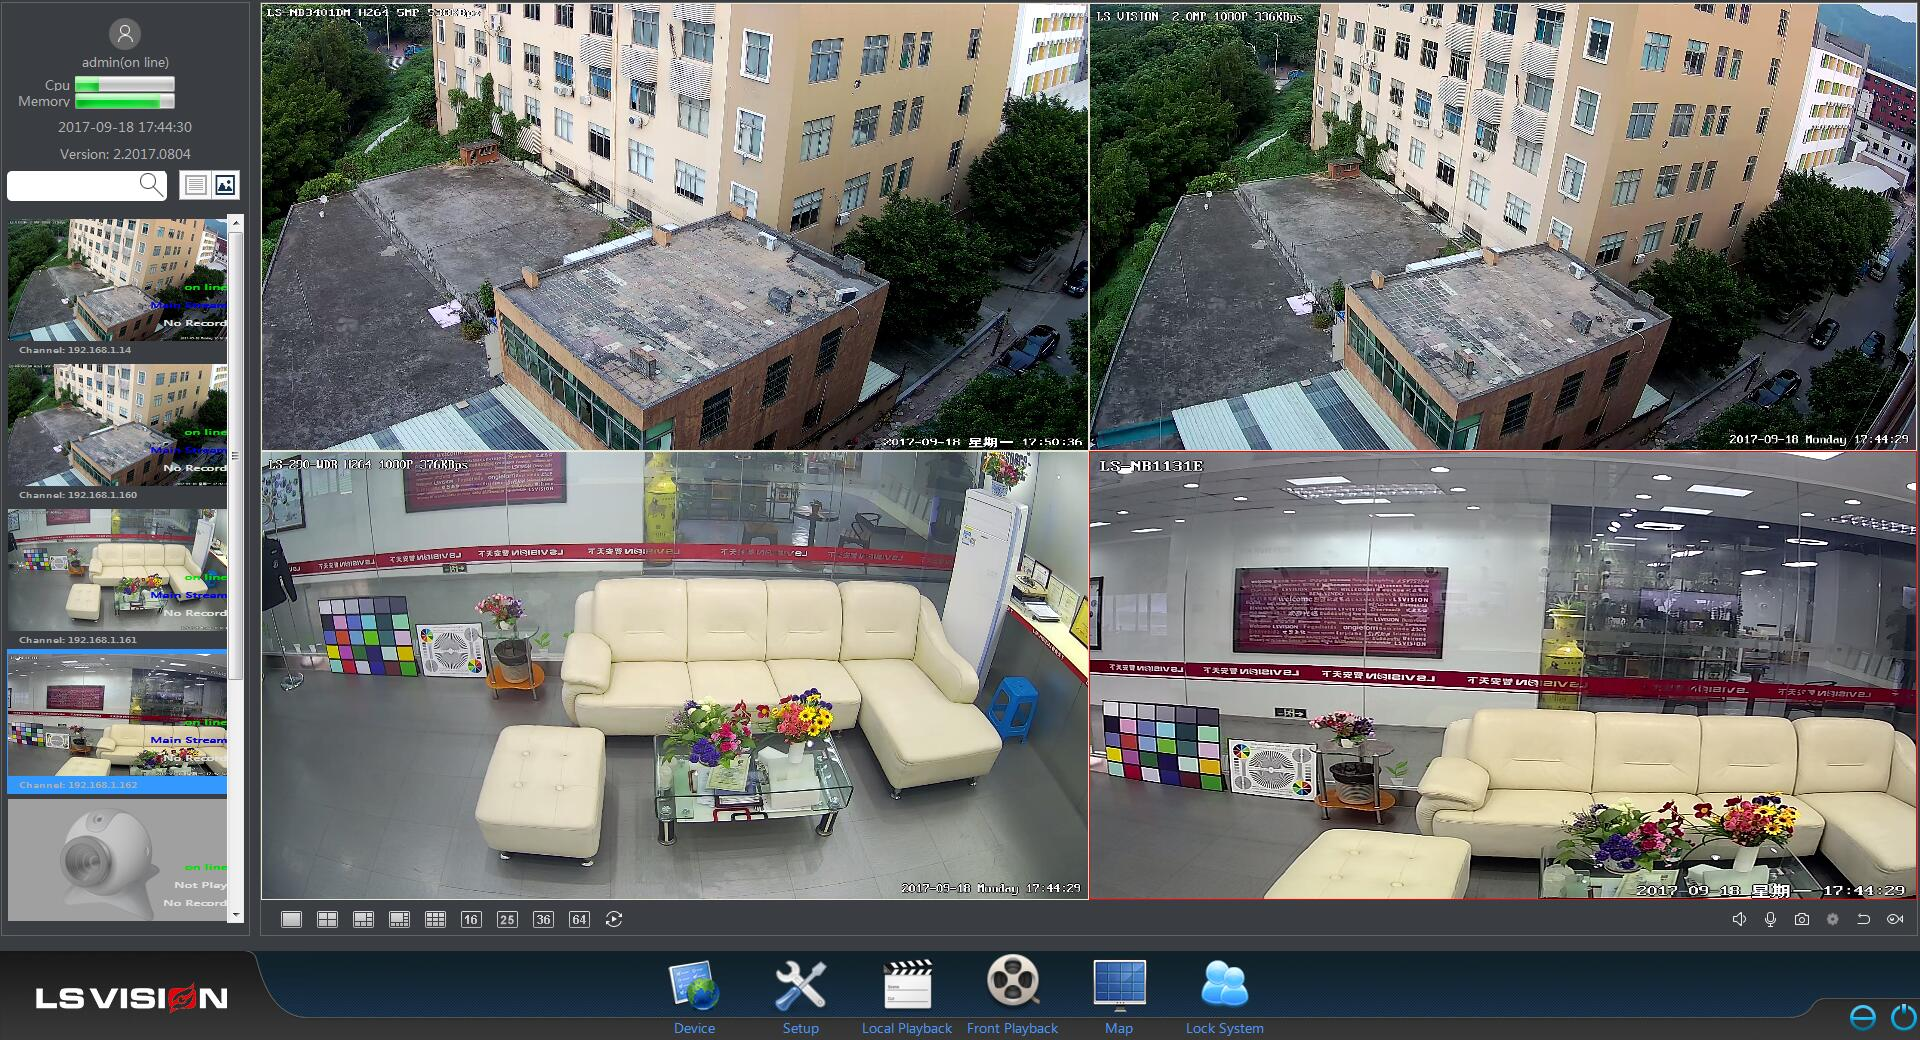 ls vision ip camera ie web page